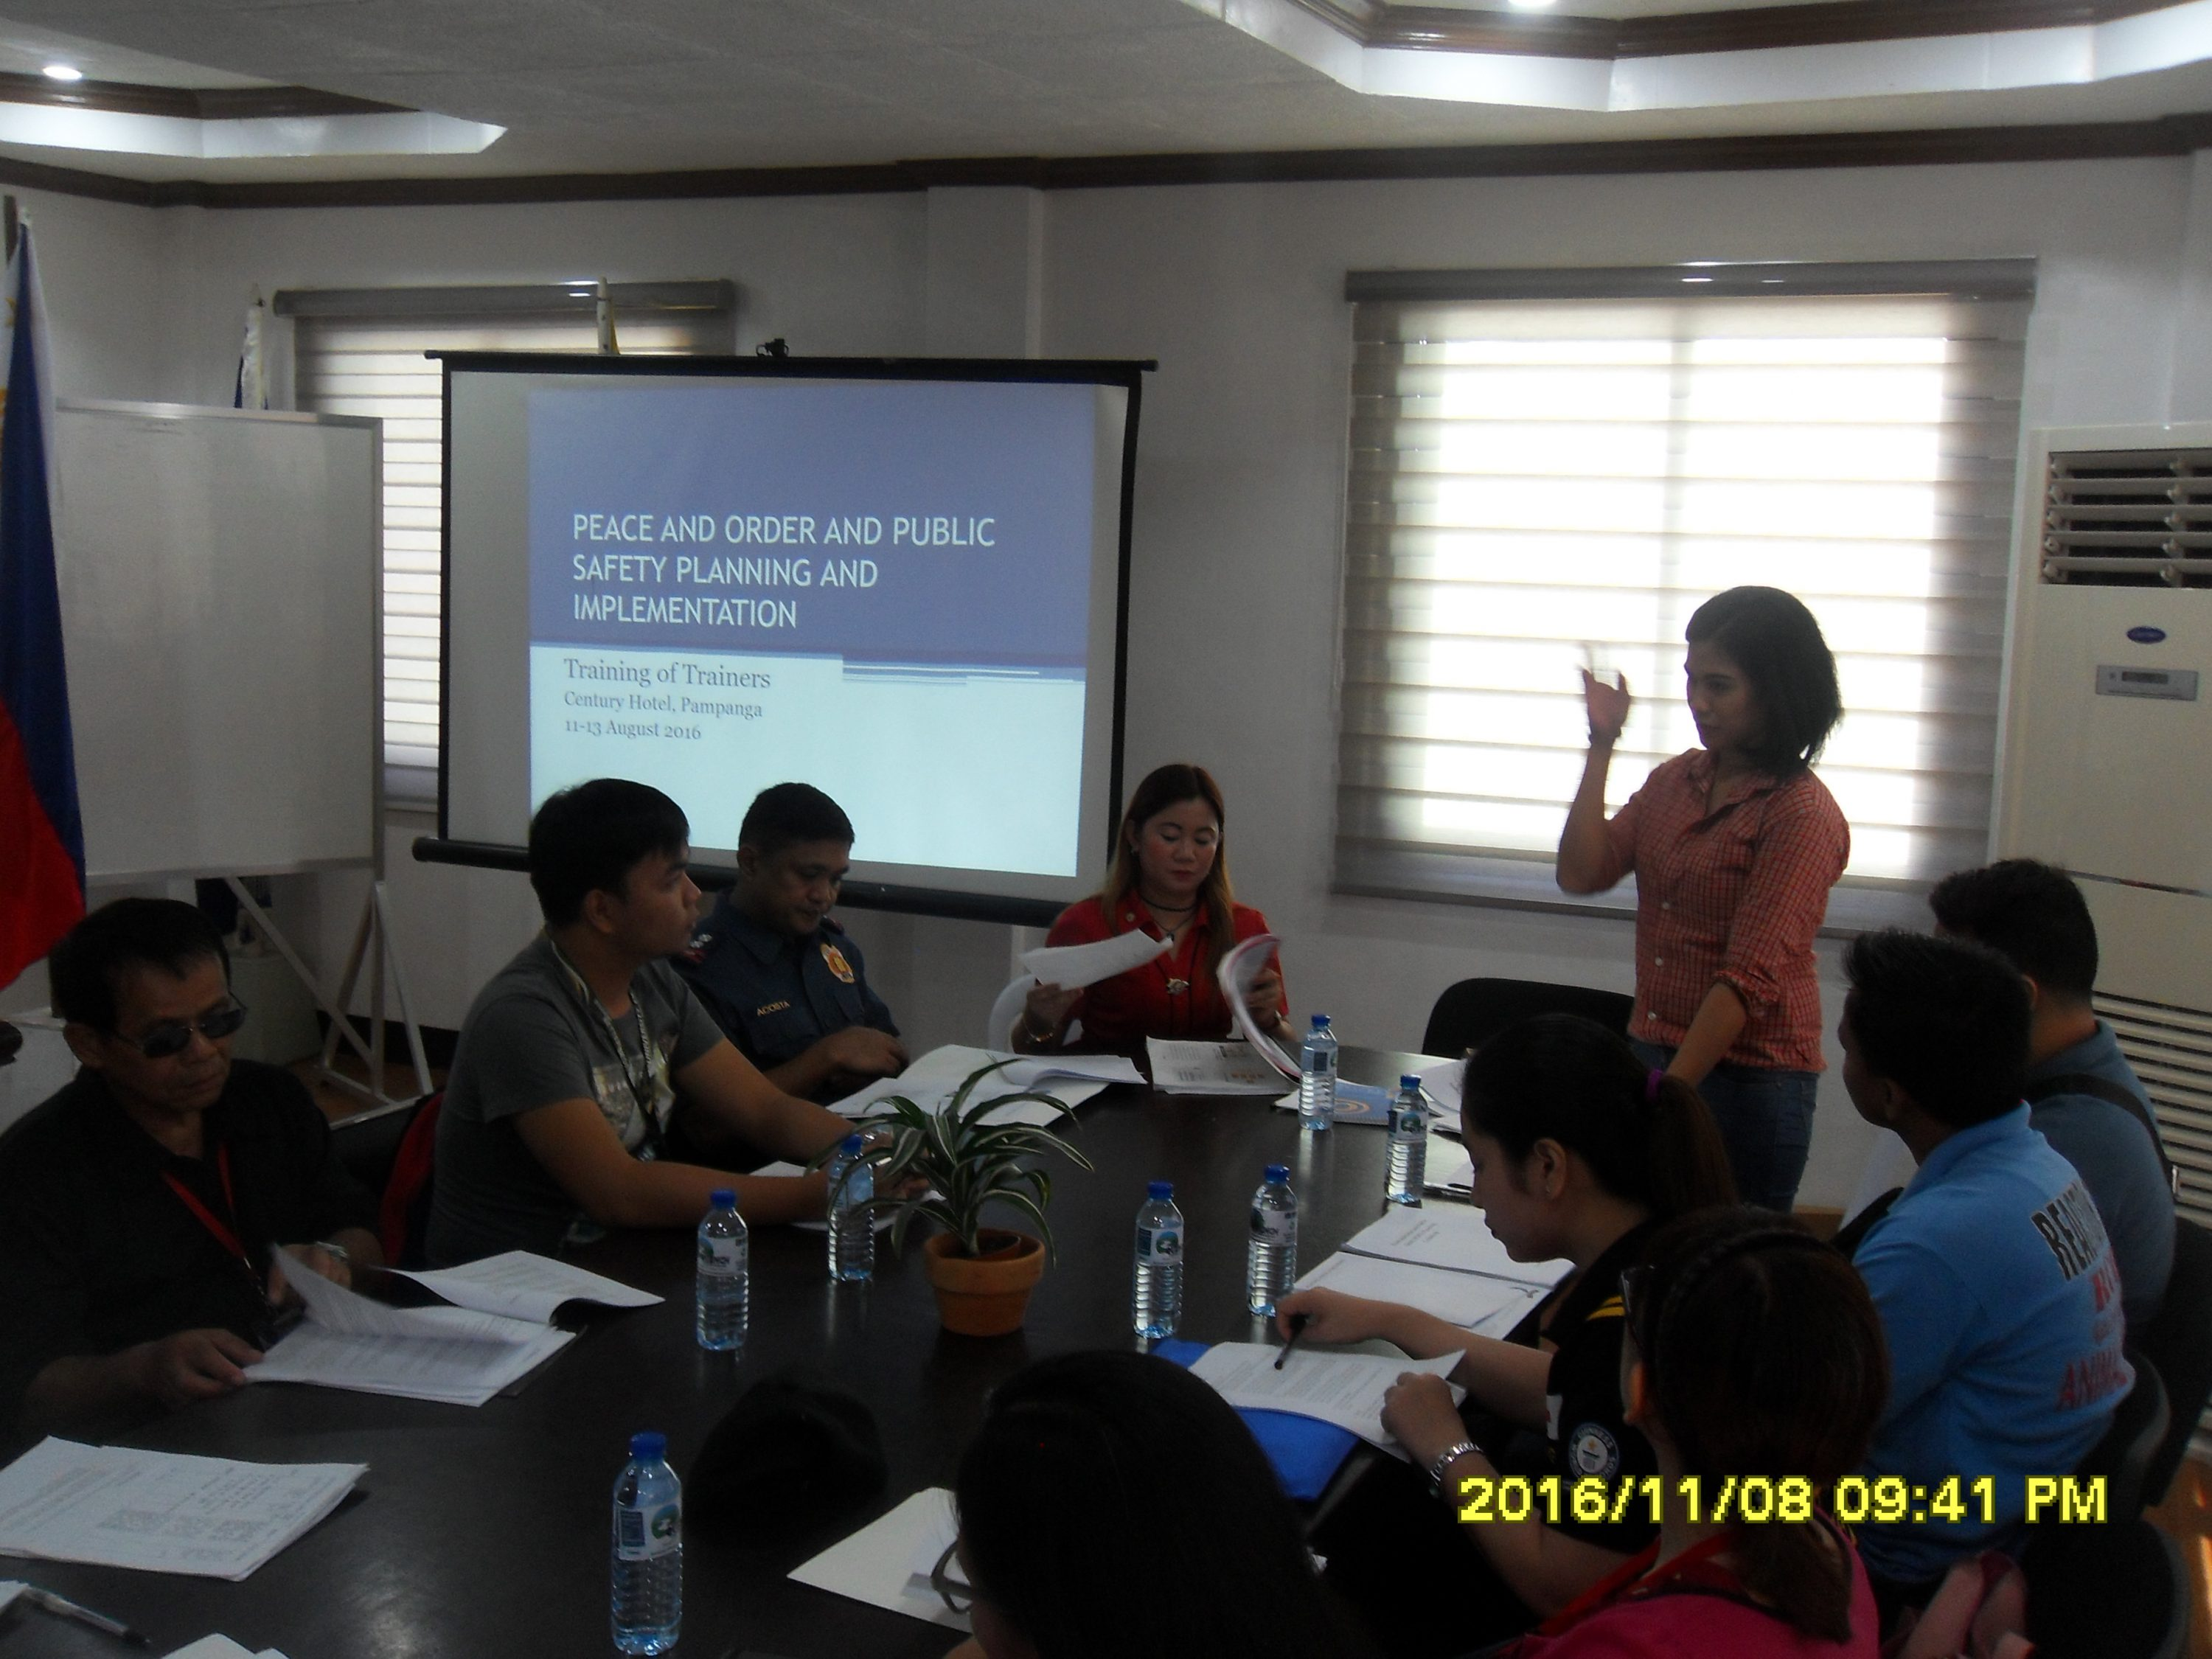 Peace and Order and Public Safety Planning Workshop Held - Balon